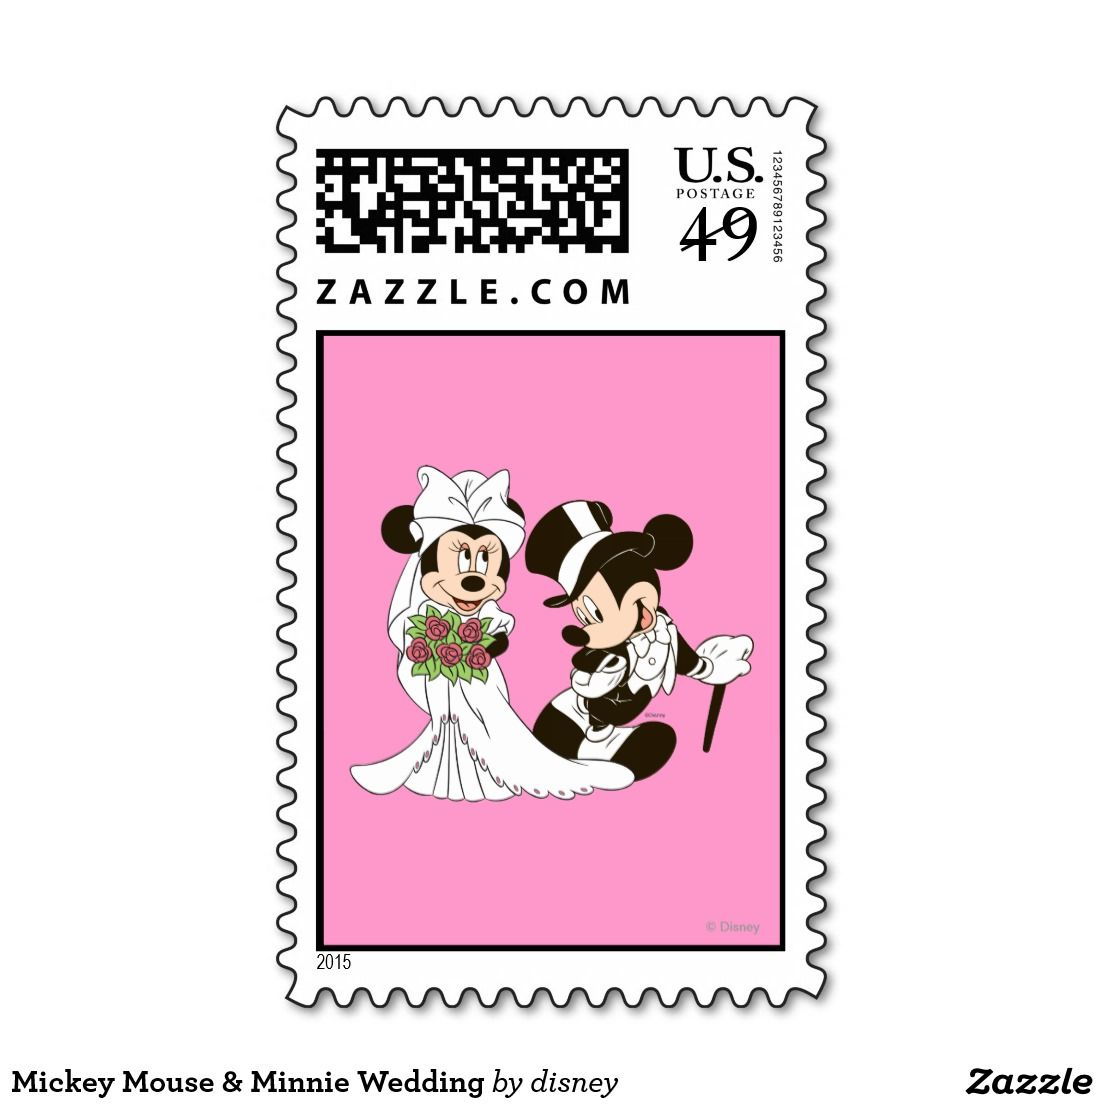 Mickey Mouse & Minnie Wedding Postage Stamp   Disney Official Art ...